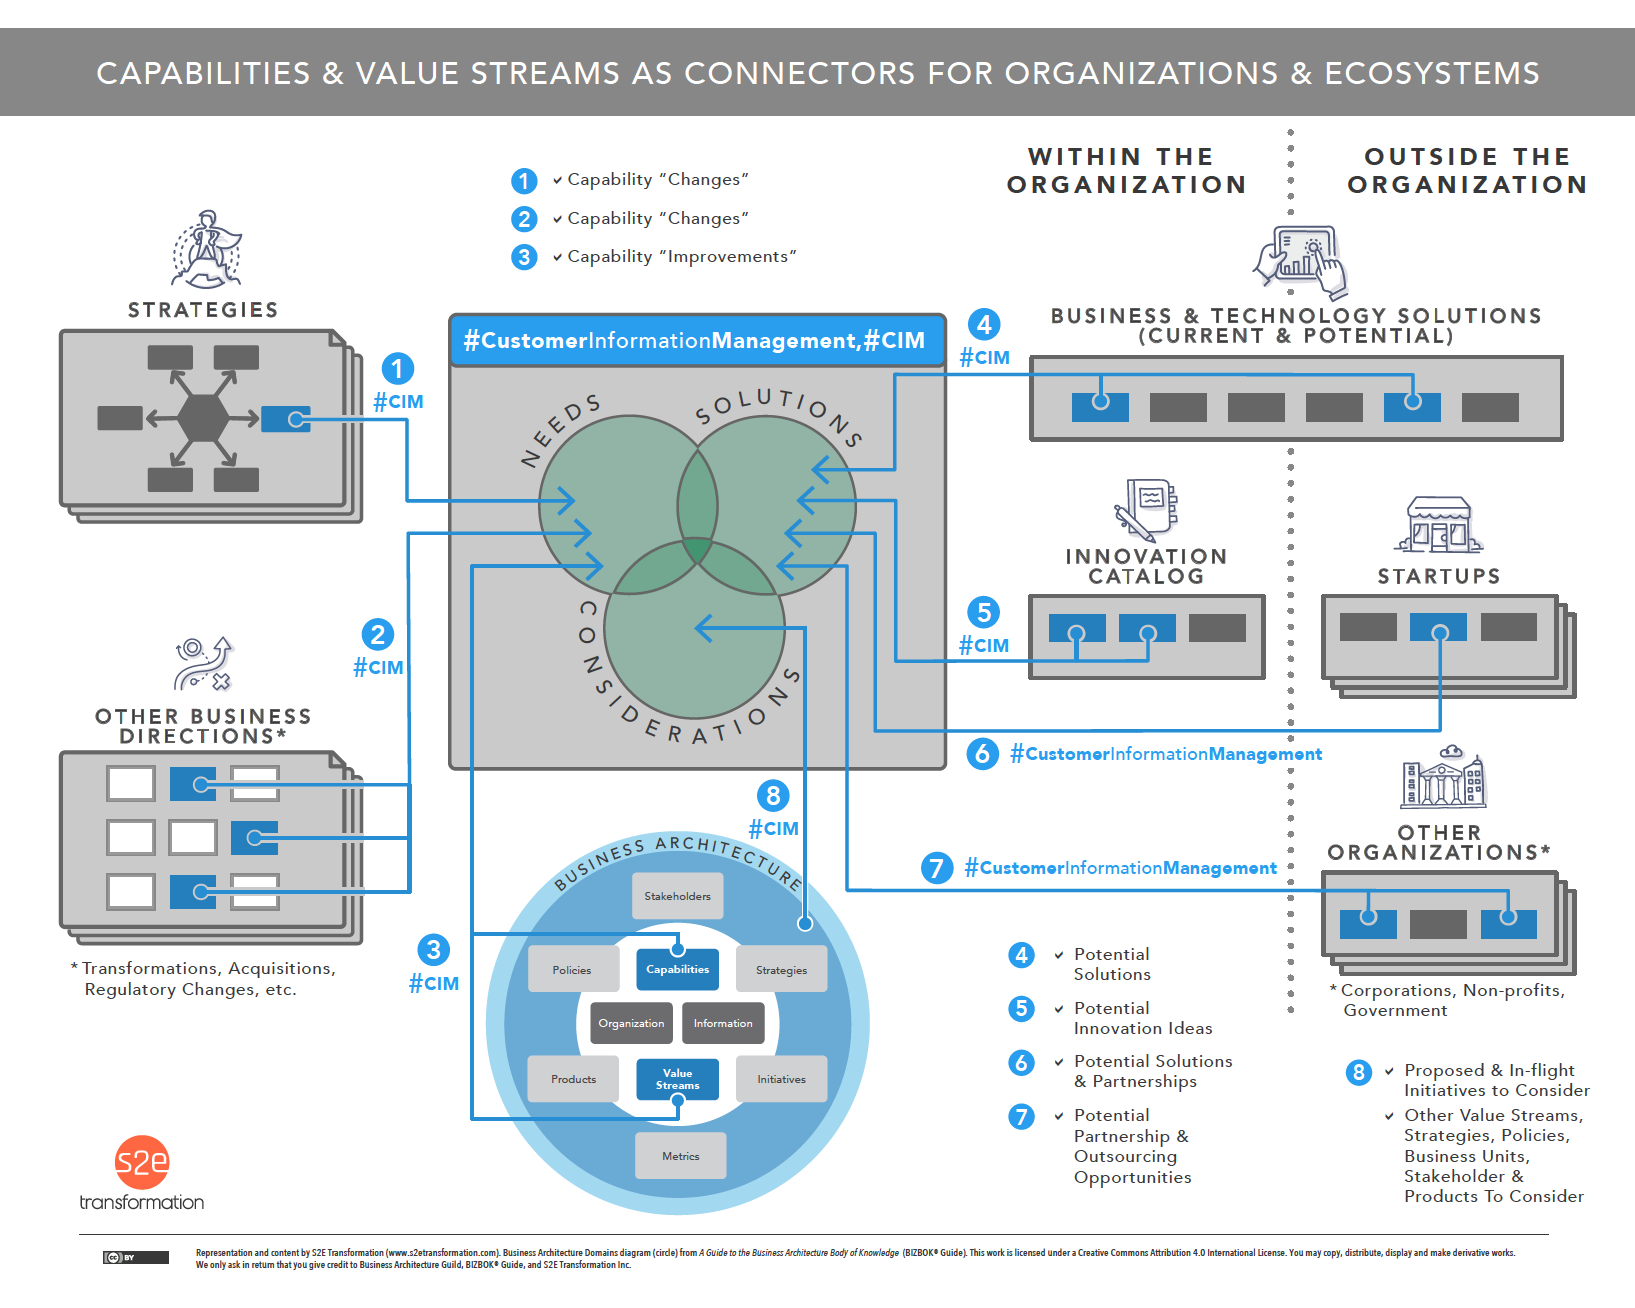 Capabilities and Value Streams As Connectors for Organizations and Ecosystems